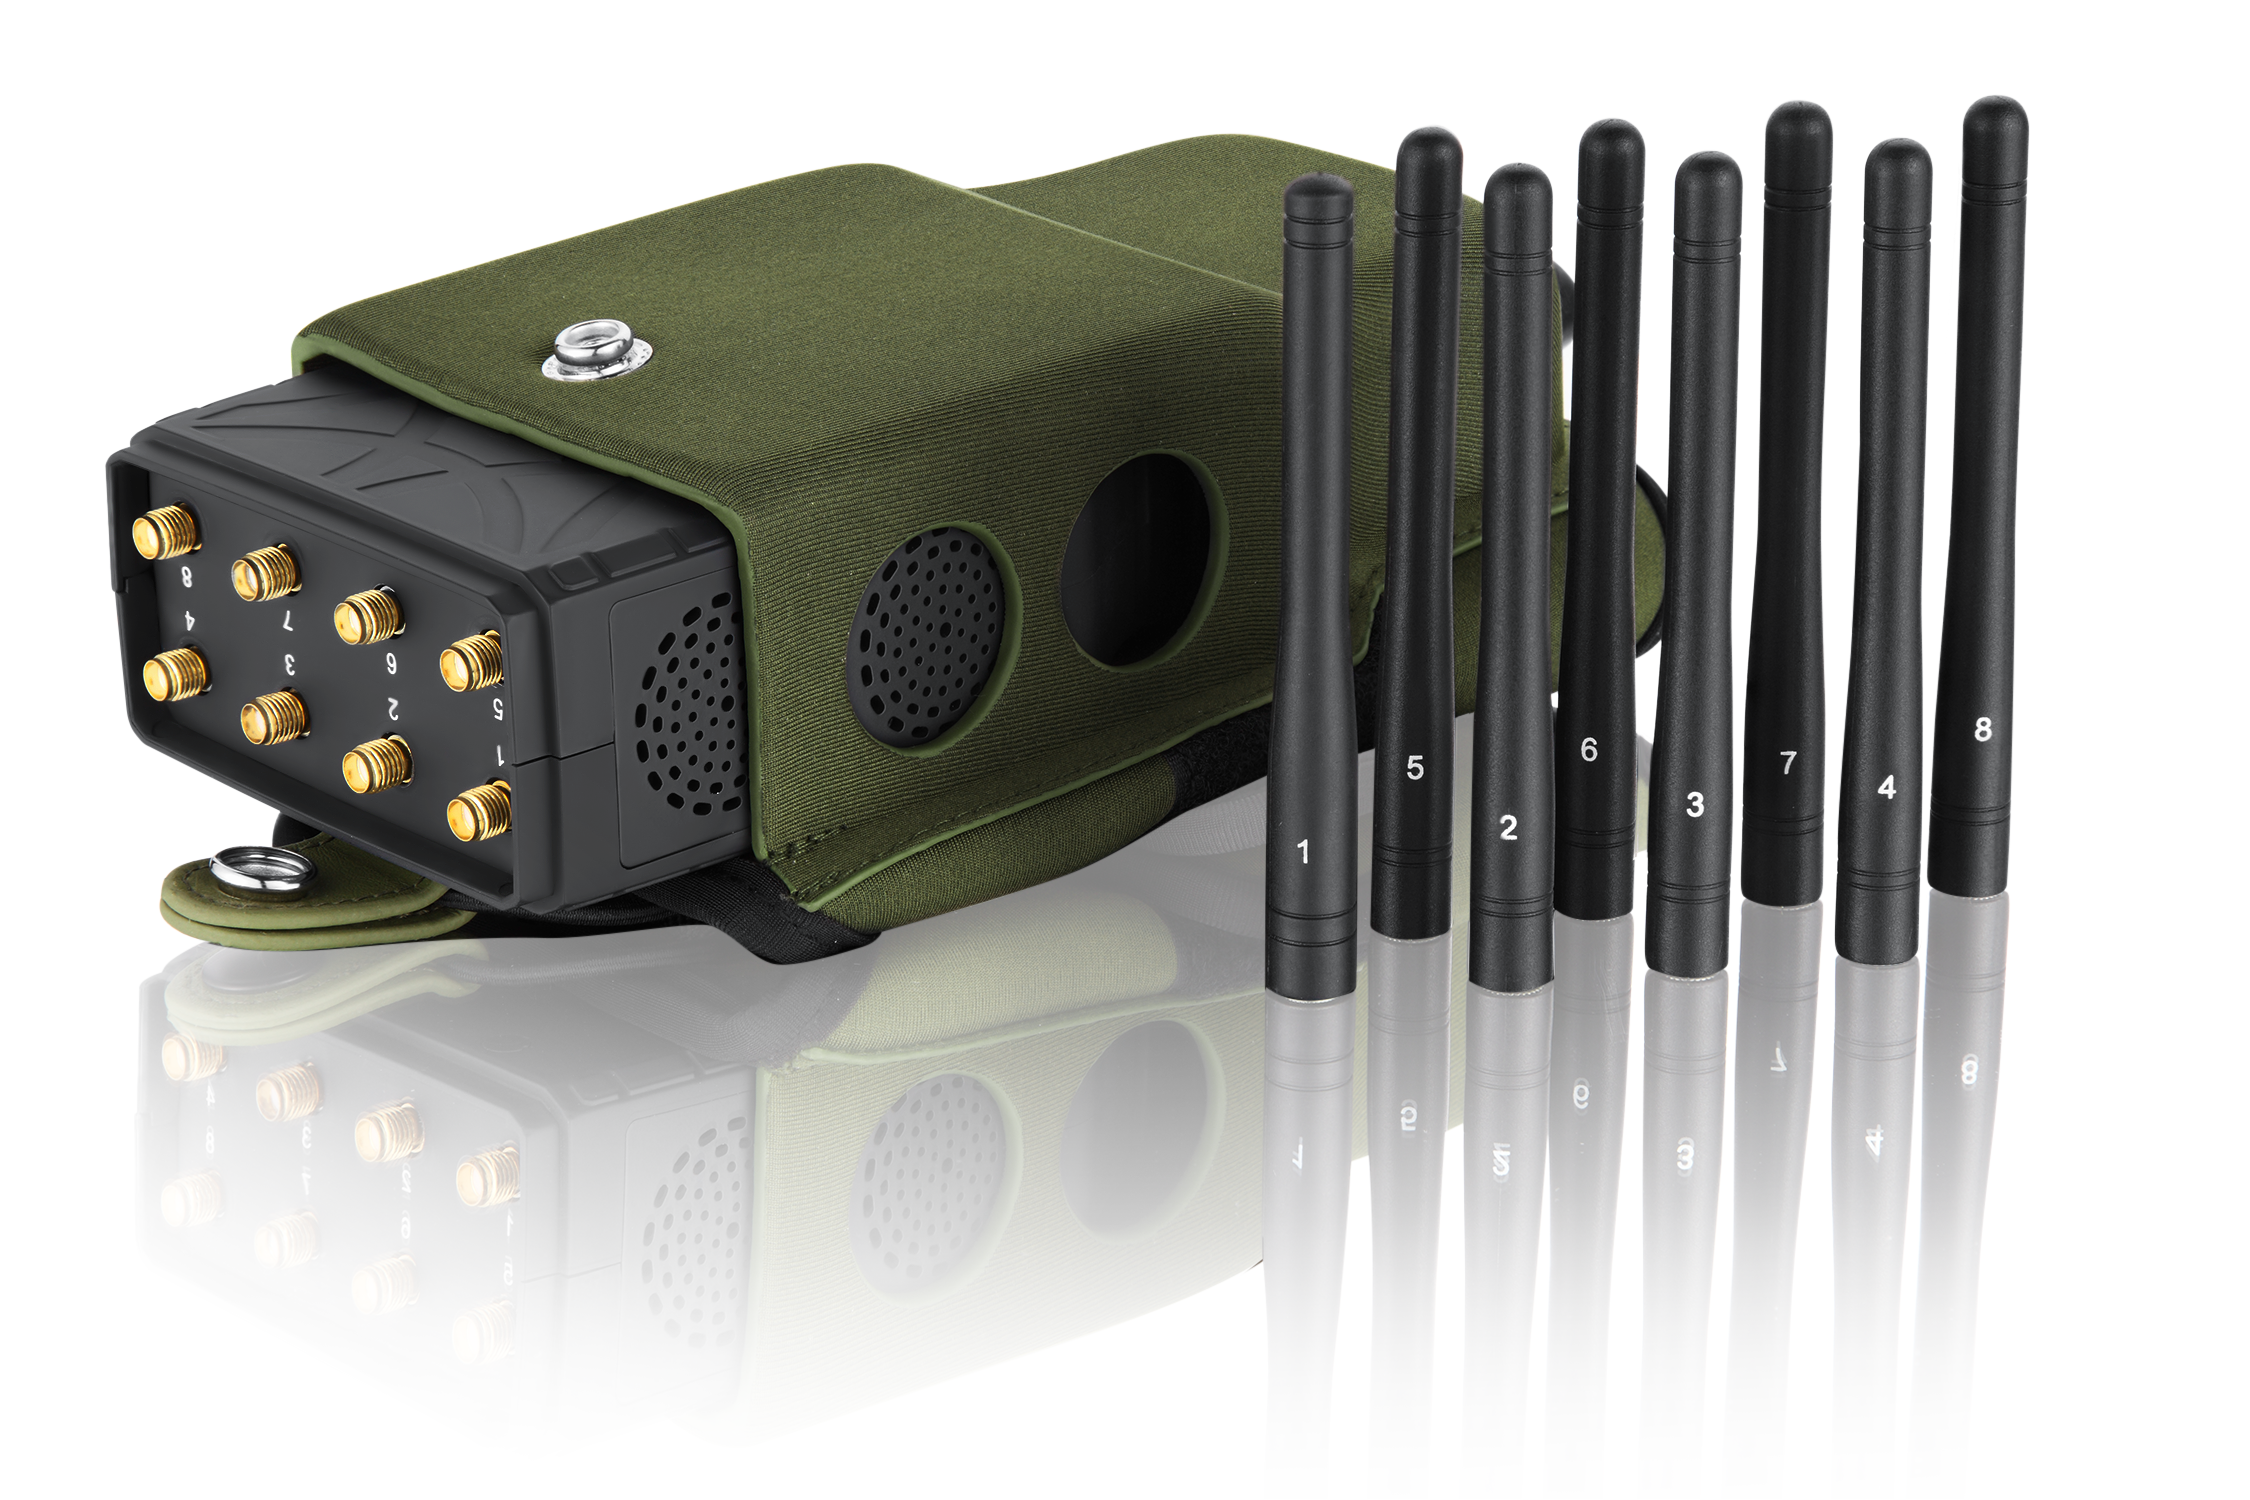 Jyt 860 8 Bands Portable Cell Phone Jammer E Mail Enquiry Stafine Gasiajammer Com Cell Phone Jammer Phone